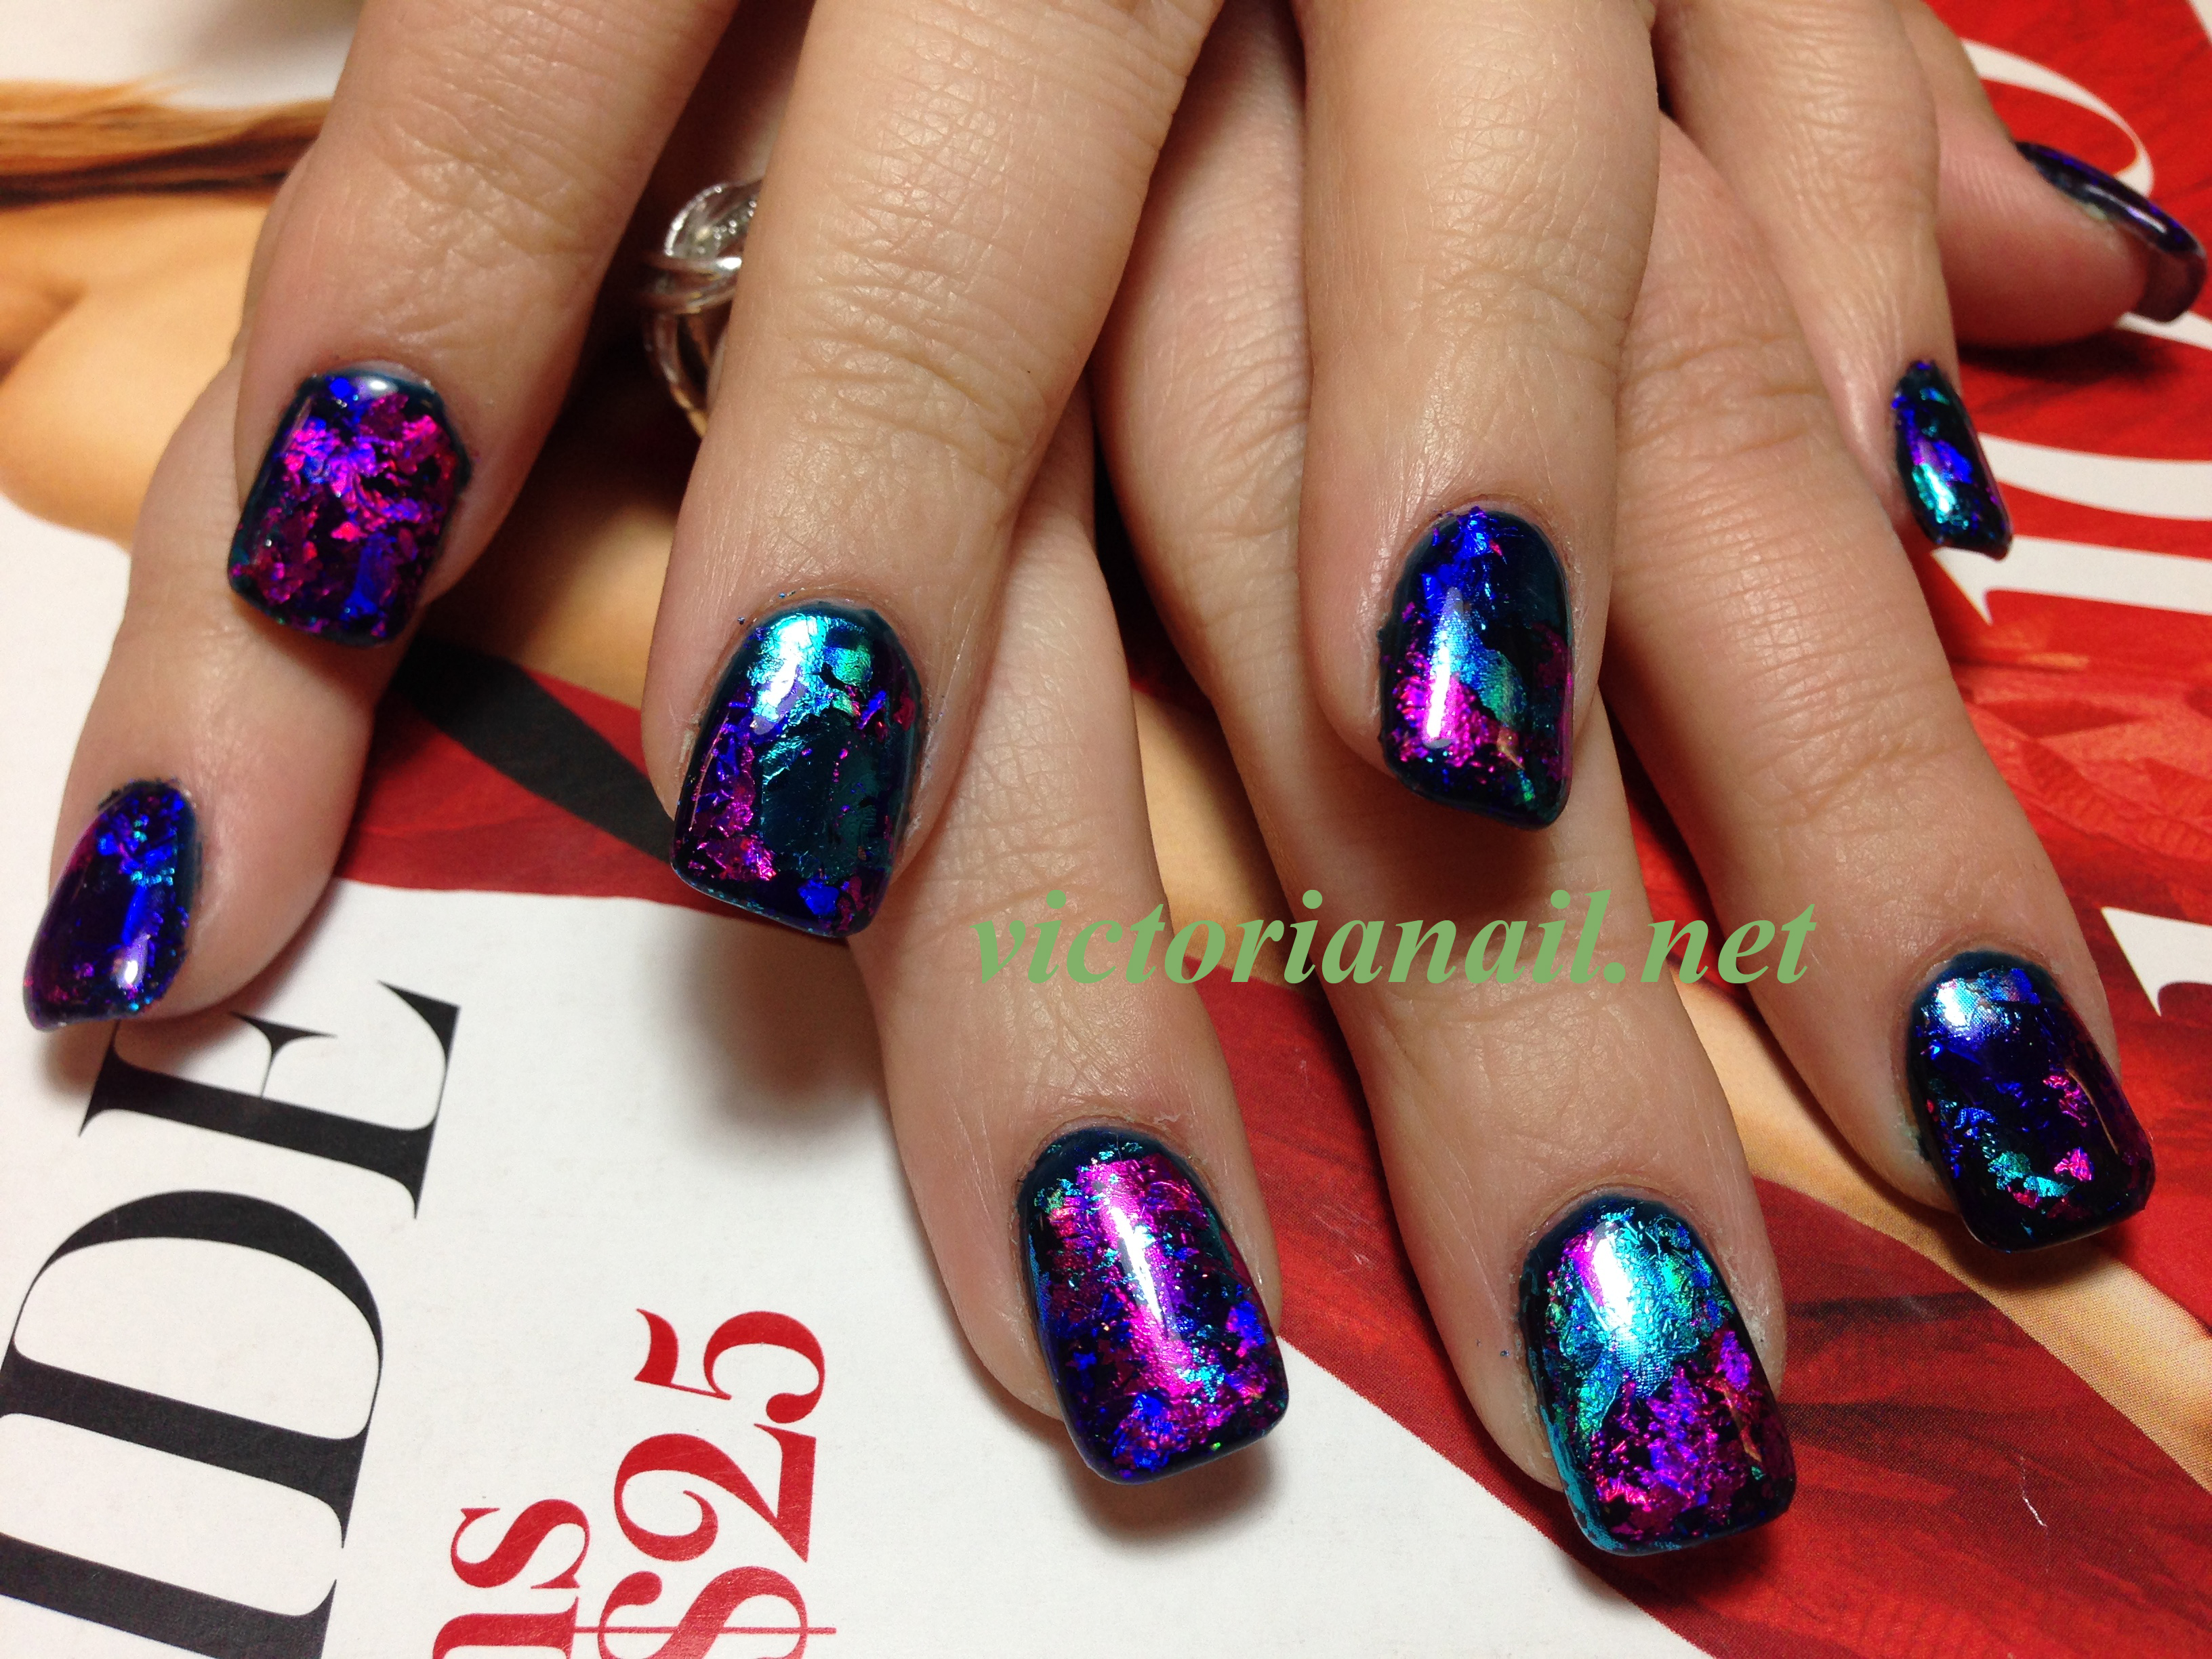 Nails ideas for prom 2015 on victoria nails special occasion img2575 copy img2572 copy prinsesfo Gallery